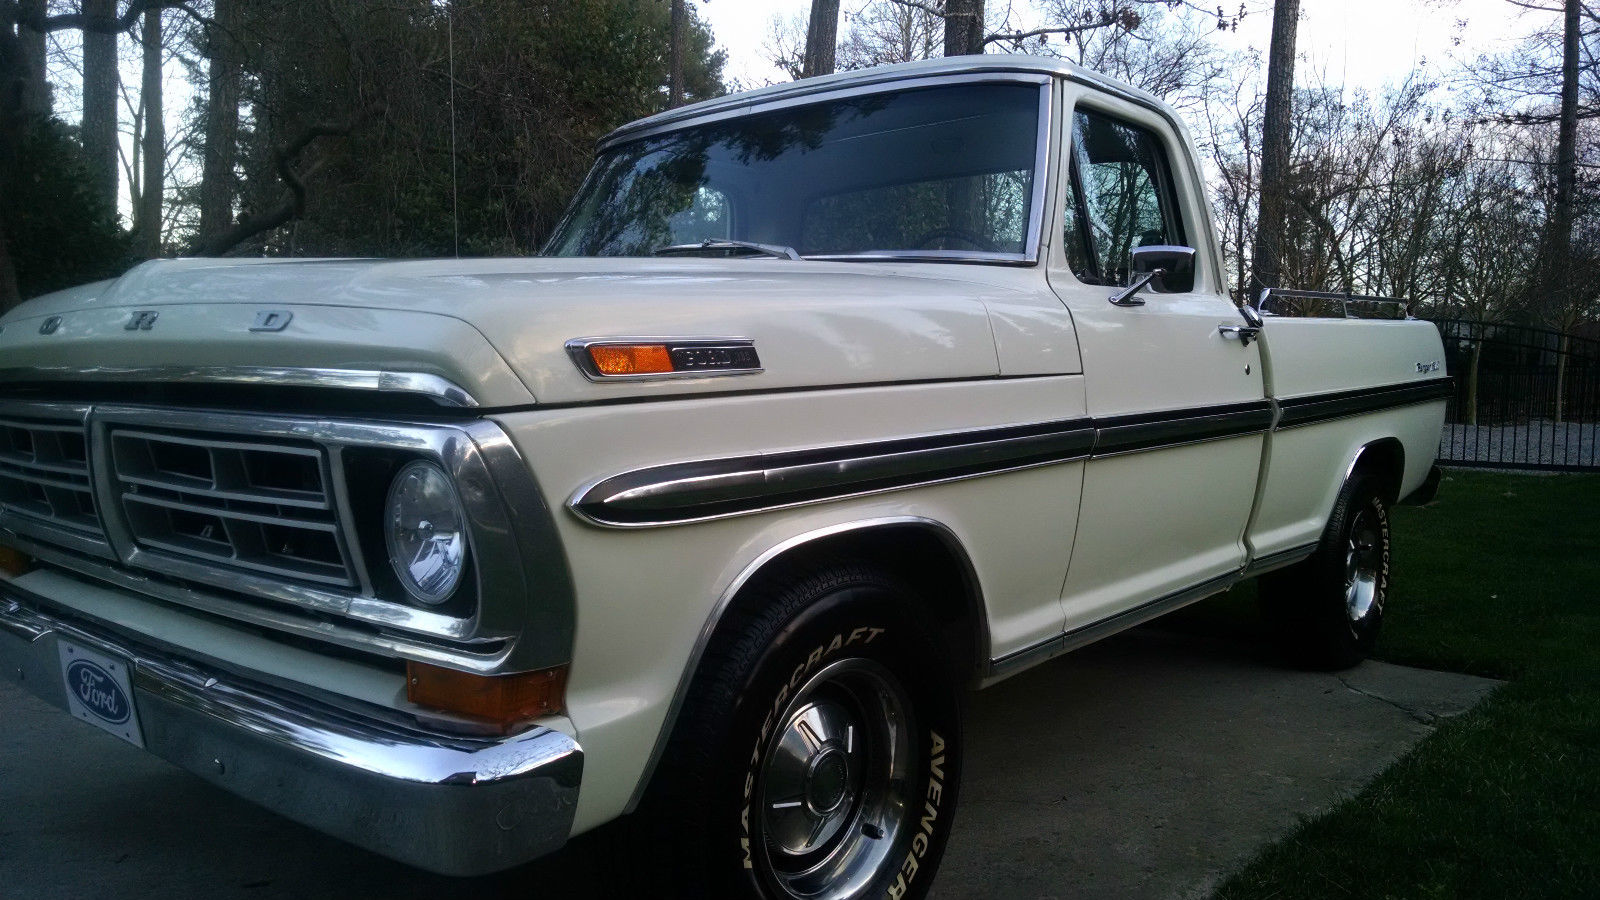 1972 F 100 Ranger Xlt In Original Wimbledon White For Sale 1969 Ford Bronco Raleigh North Carolina United States